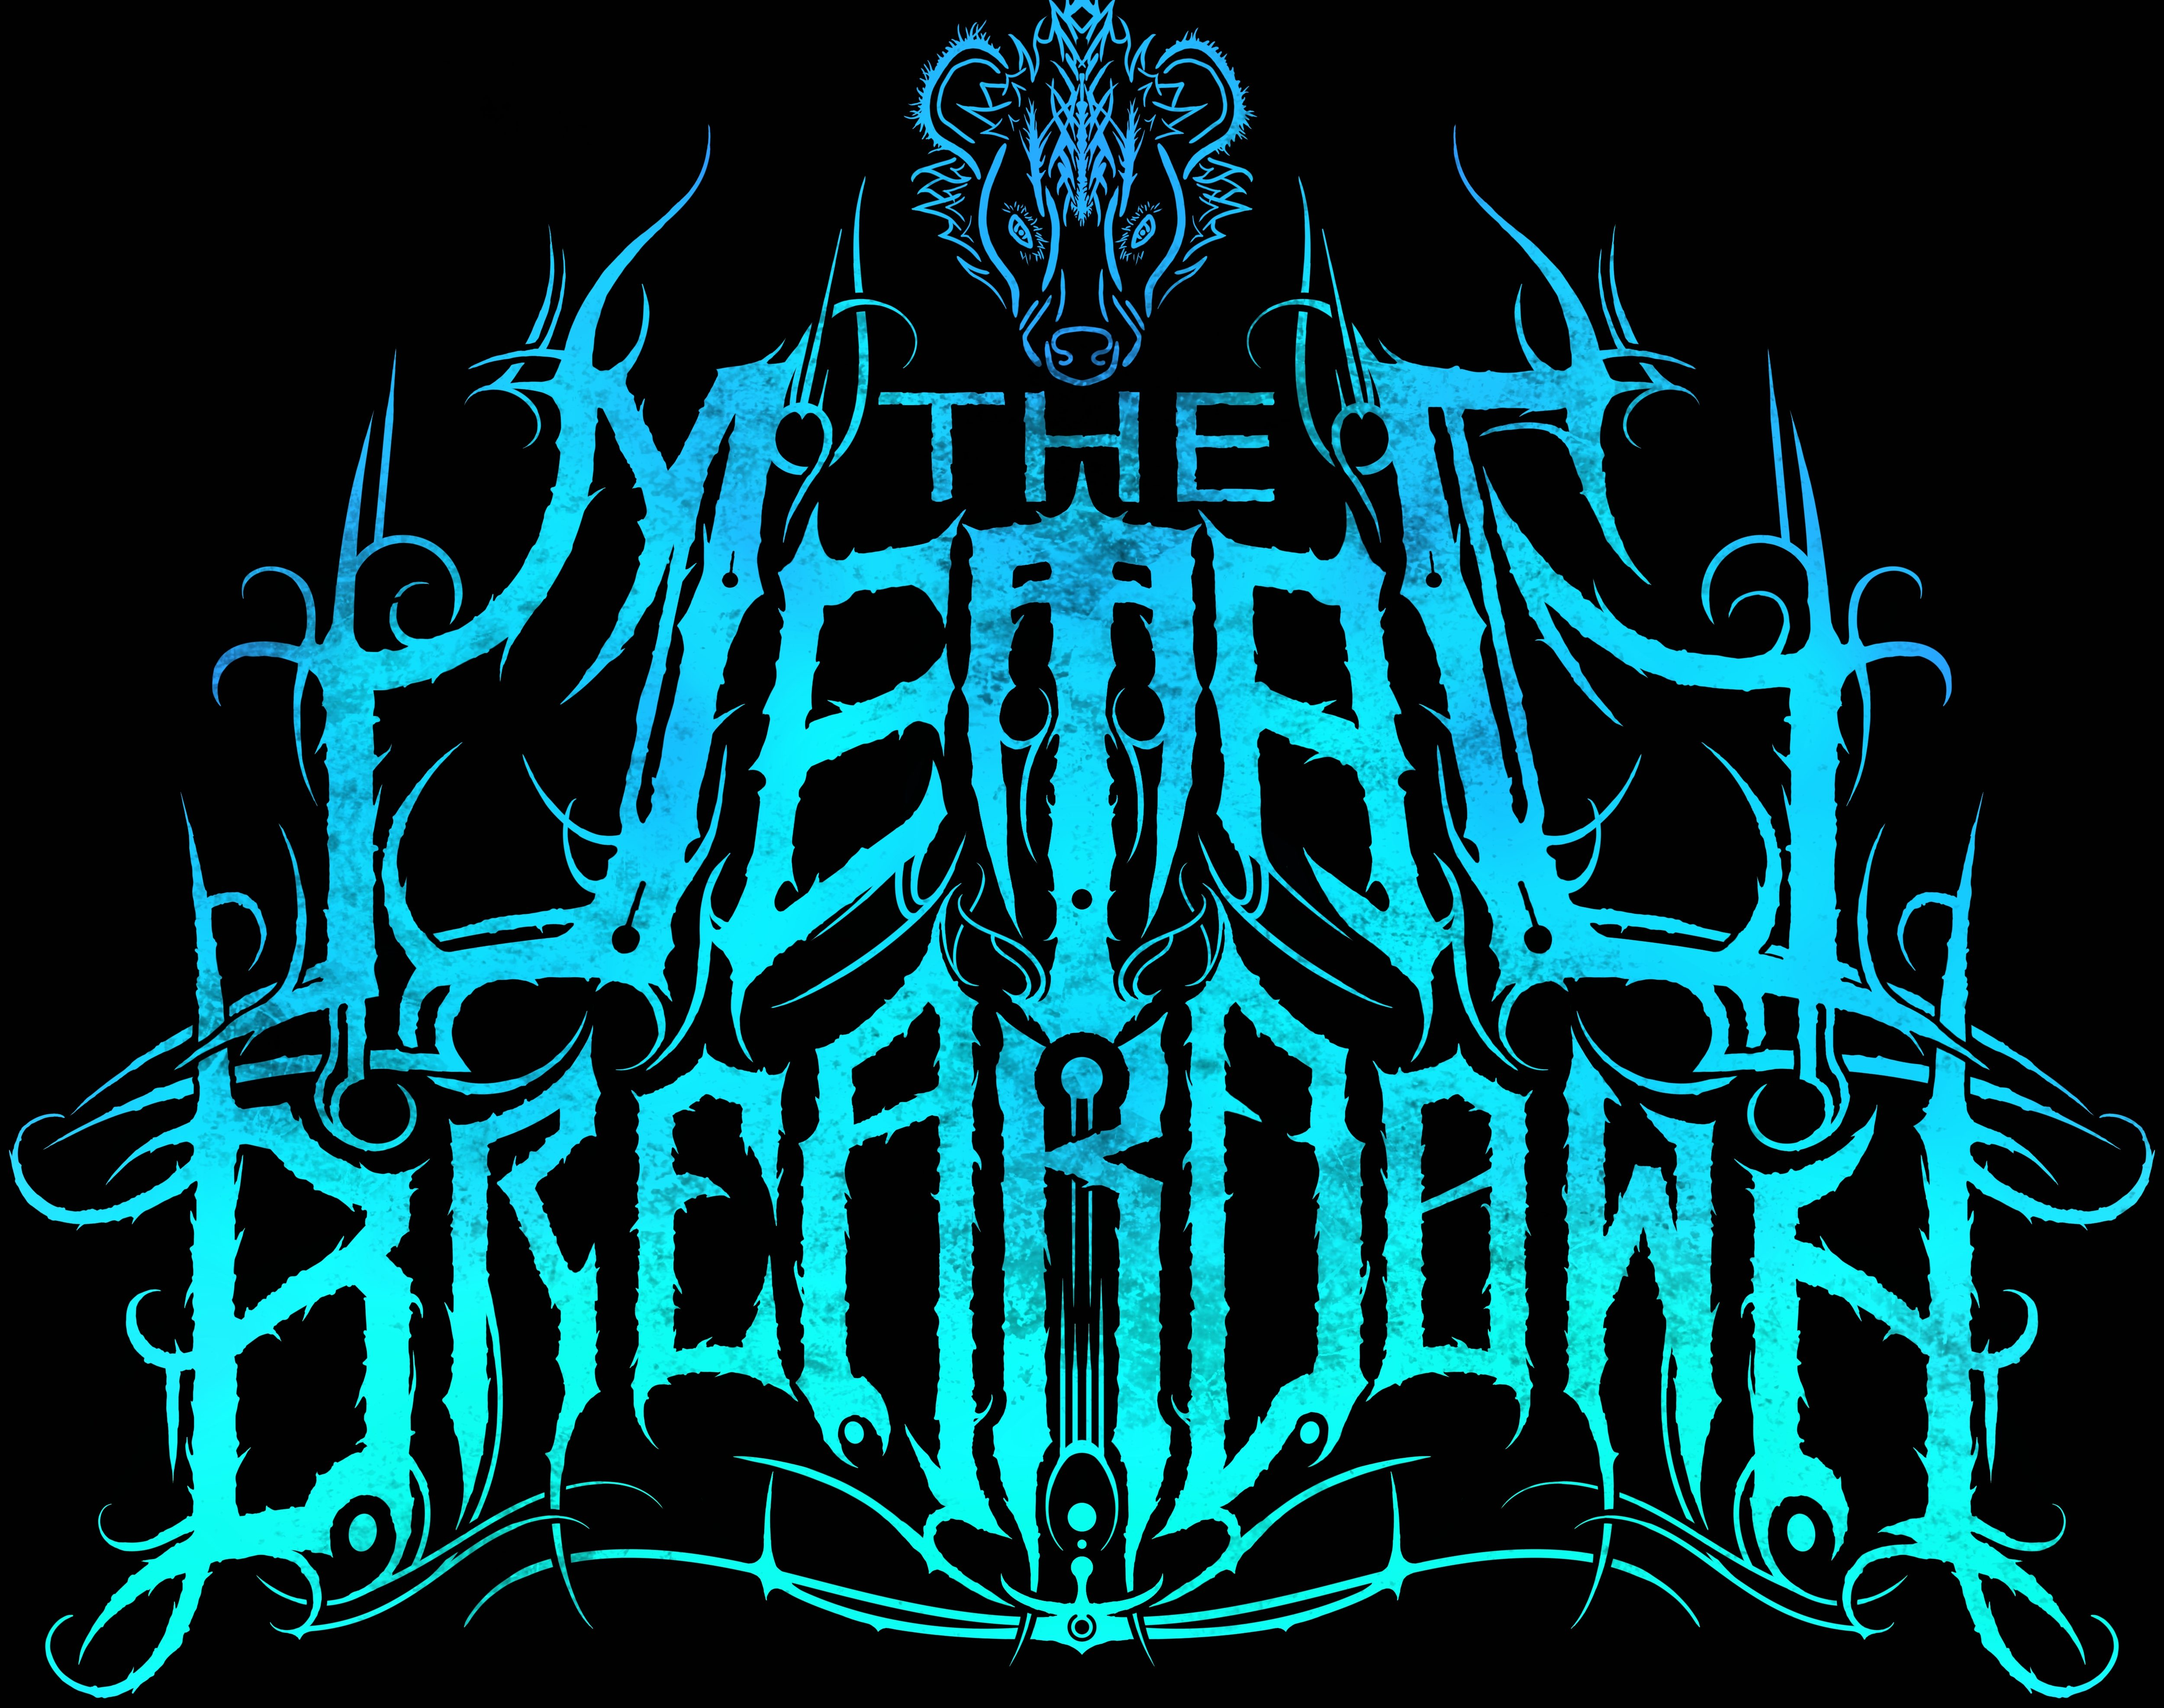 The Metal Breakdown